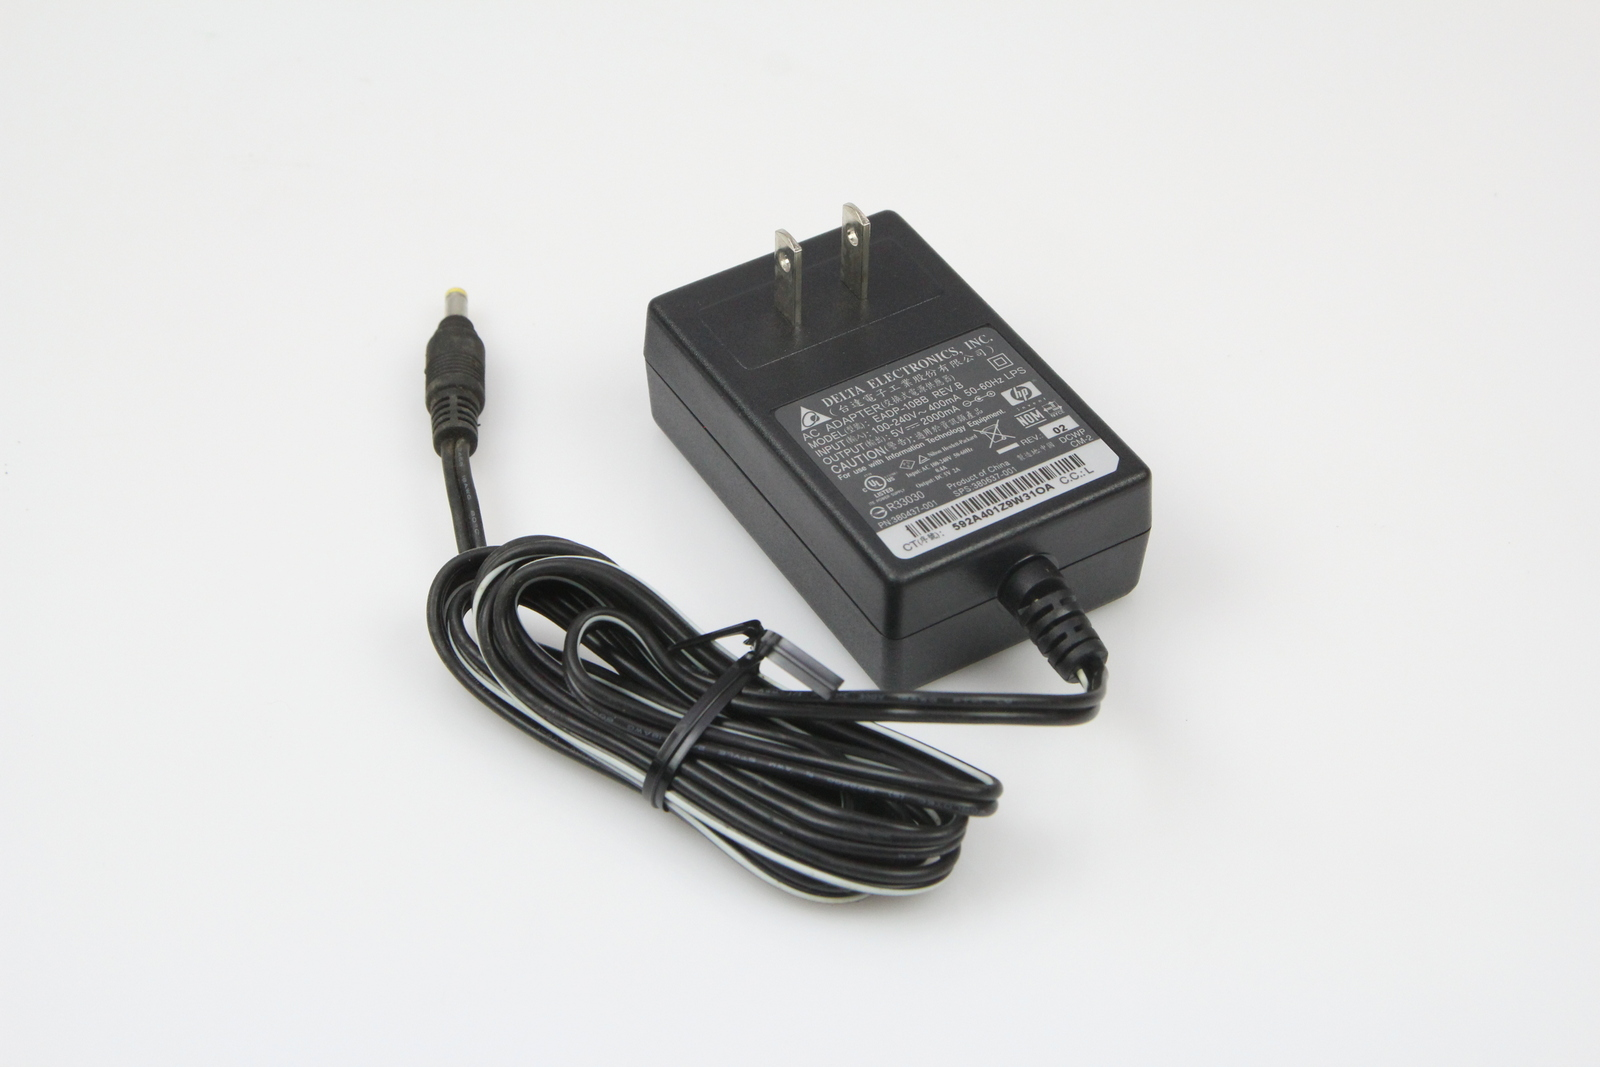 Details about Genuine Delta ADP-10SB EADP-10BB AC Adapter Power Charger USA  Plug 5V